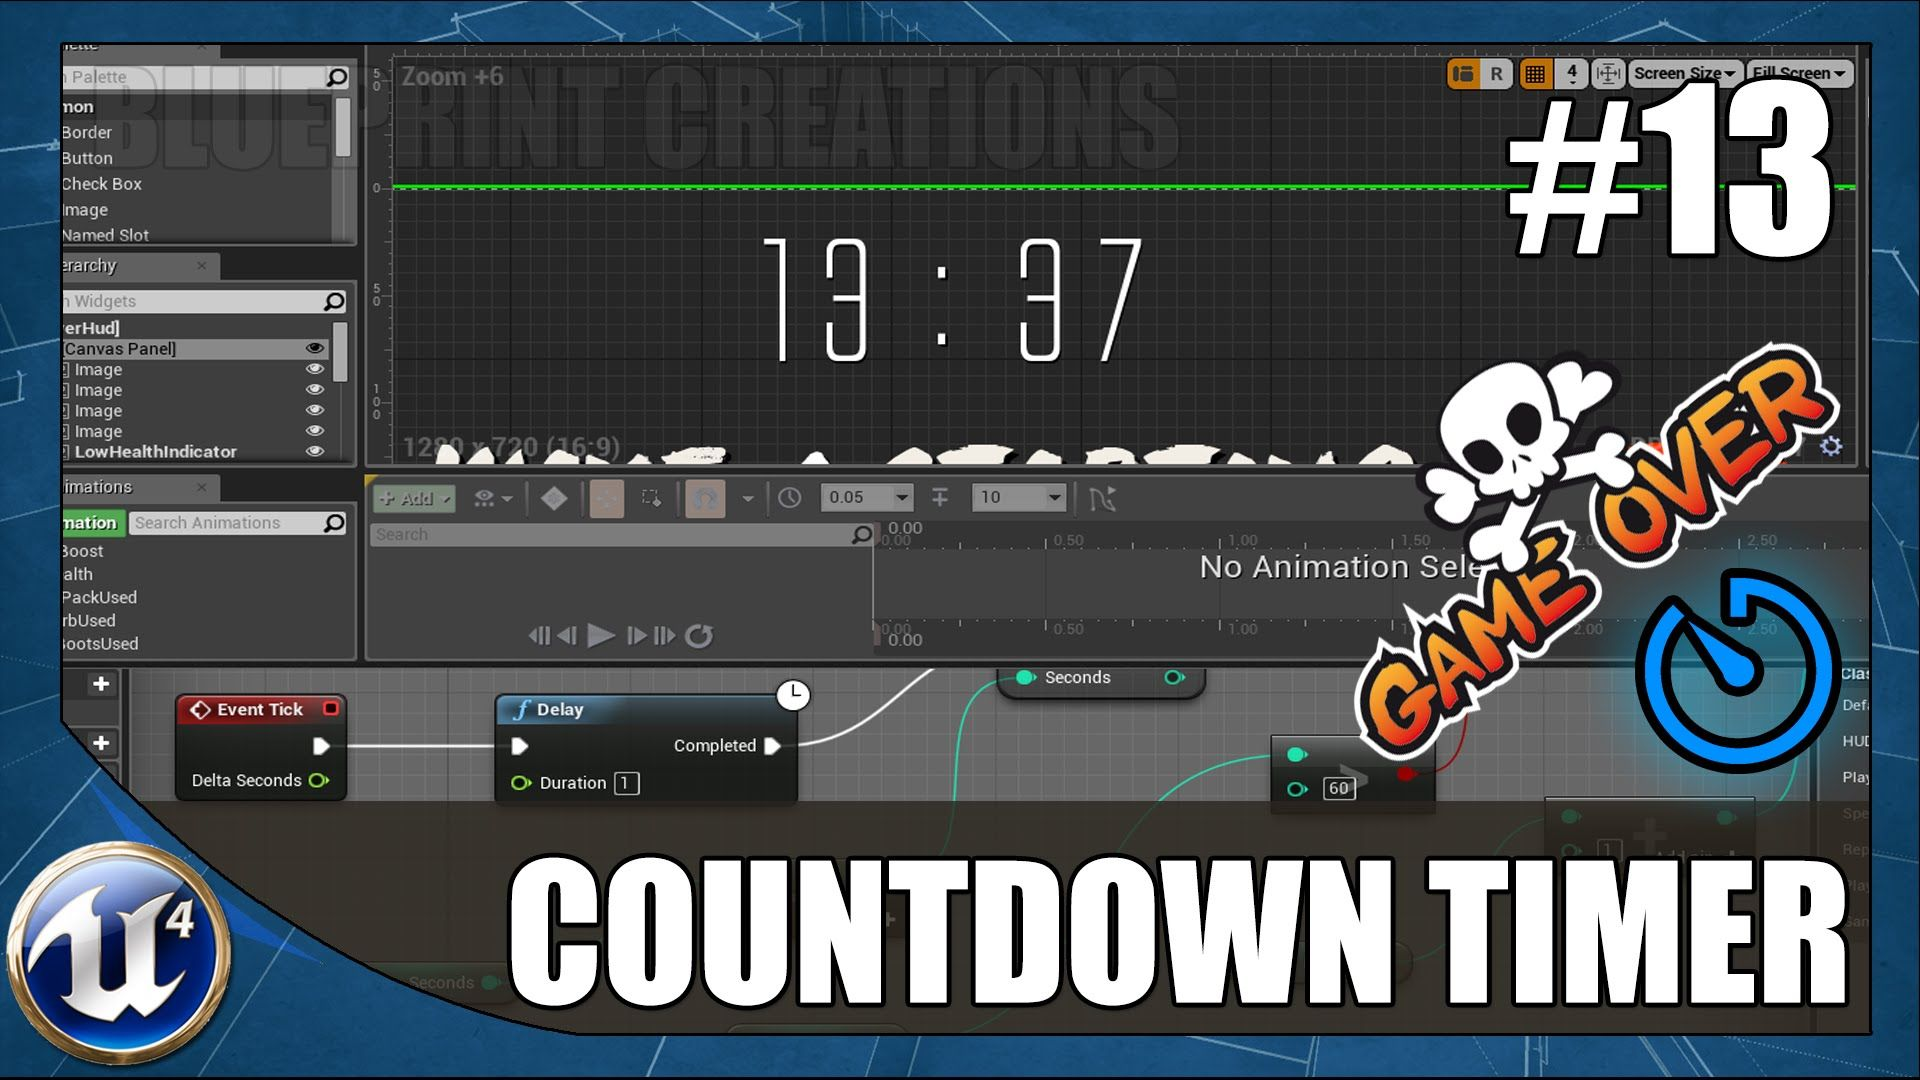 Ue4 countdown timer unreal engine pinterest ue4 countdown timer malvernweather Image collections